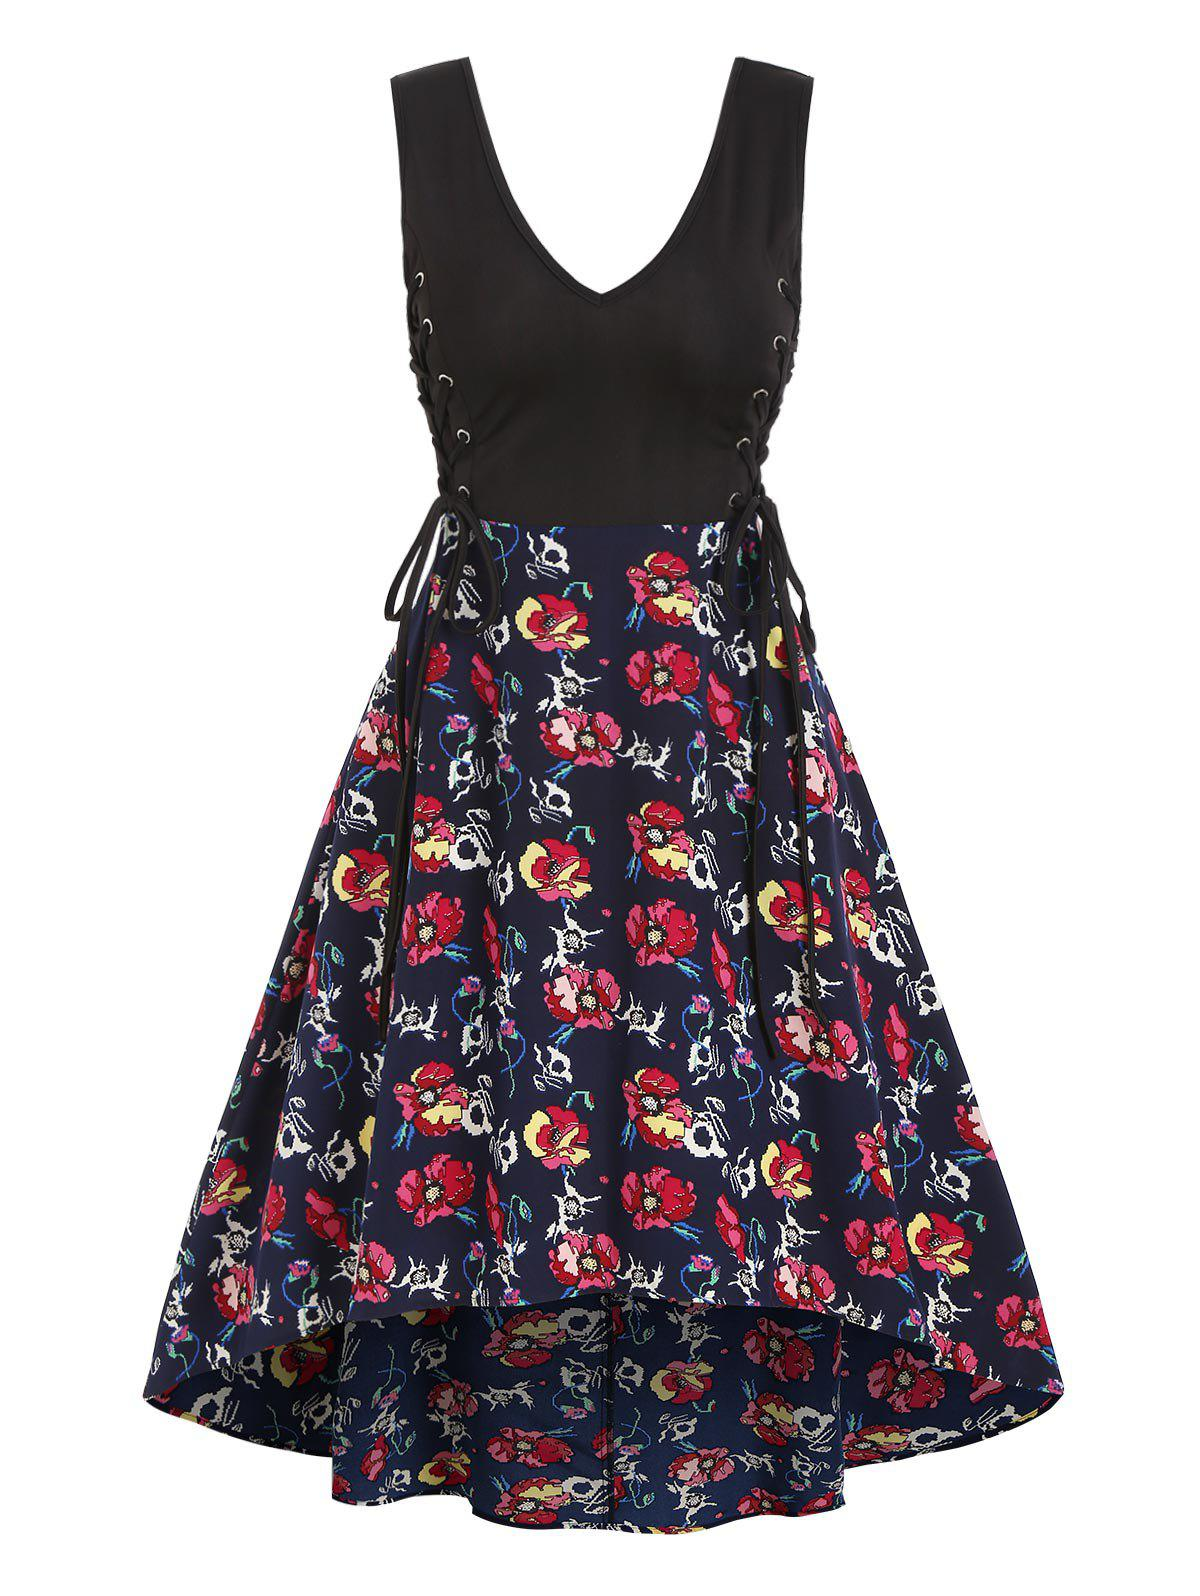 New Floral Skull Print Lace Up Sleeveless High Low Dress